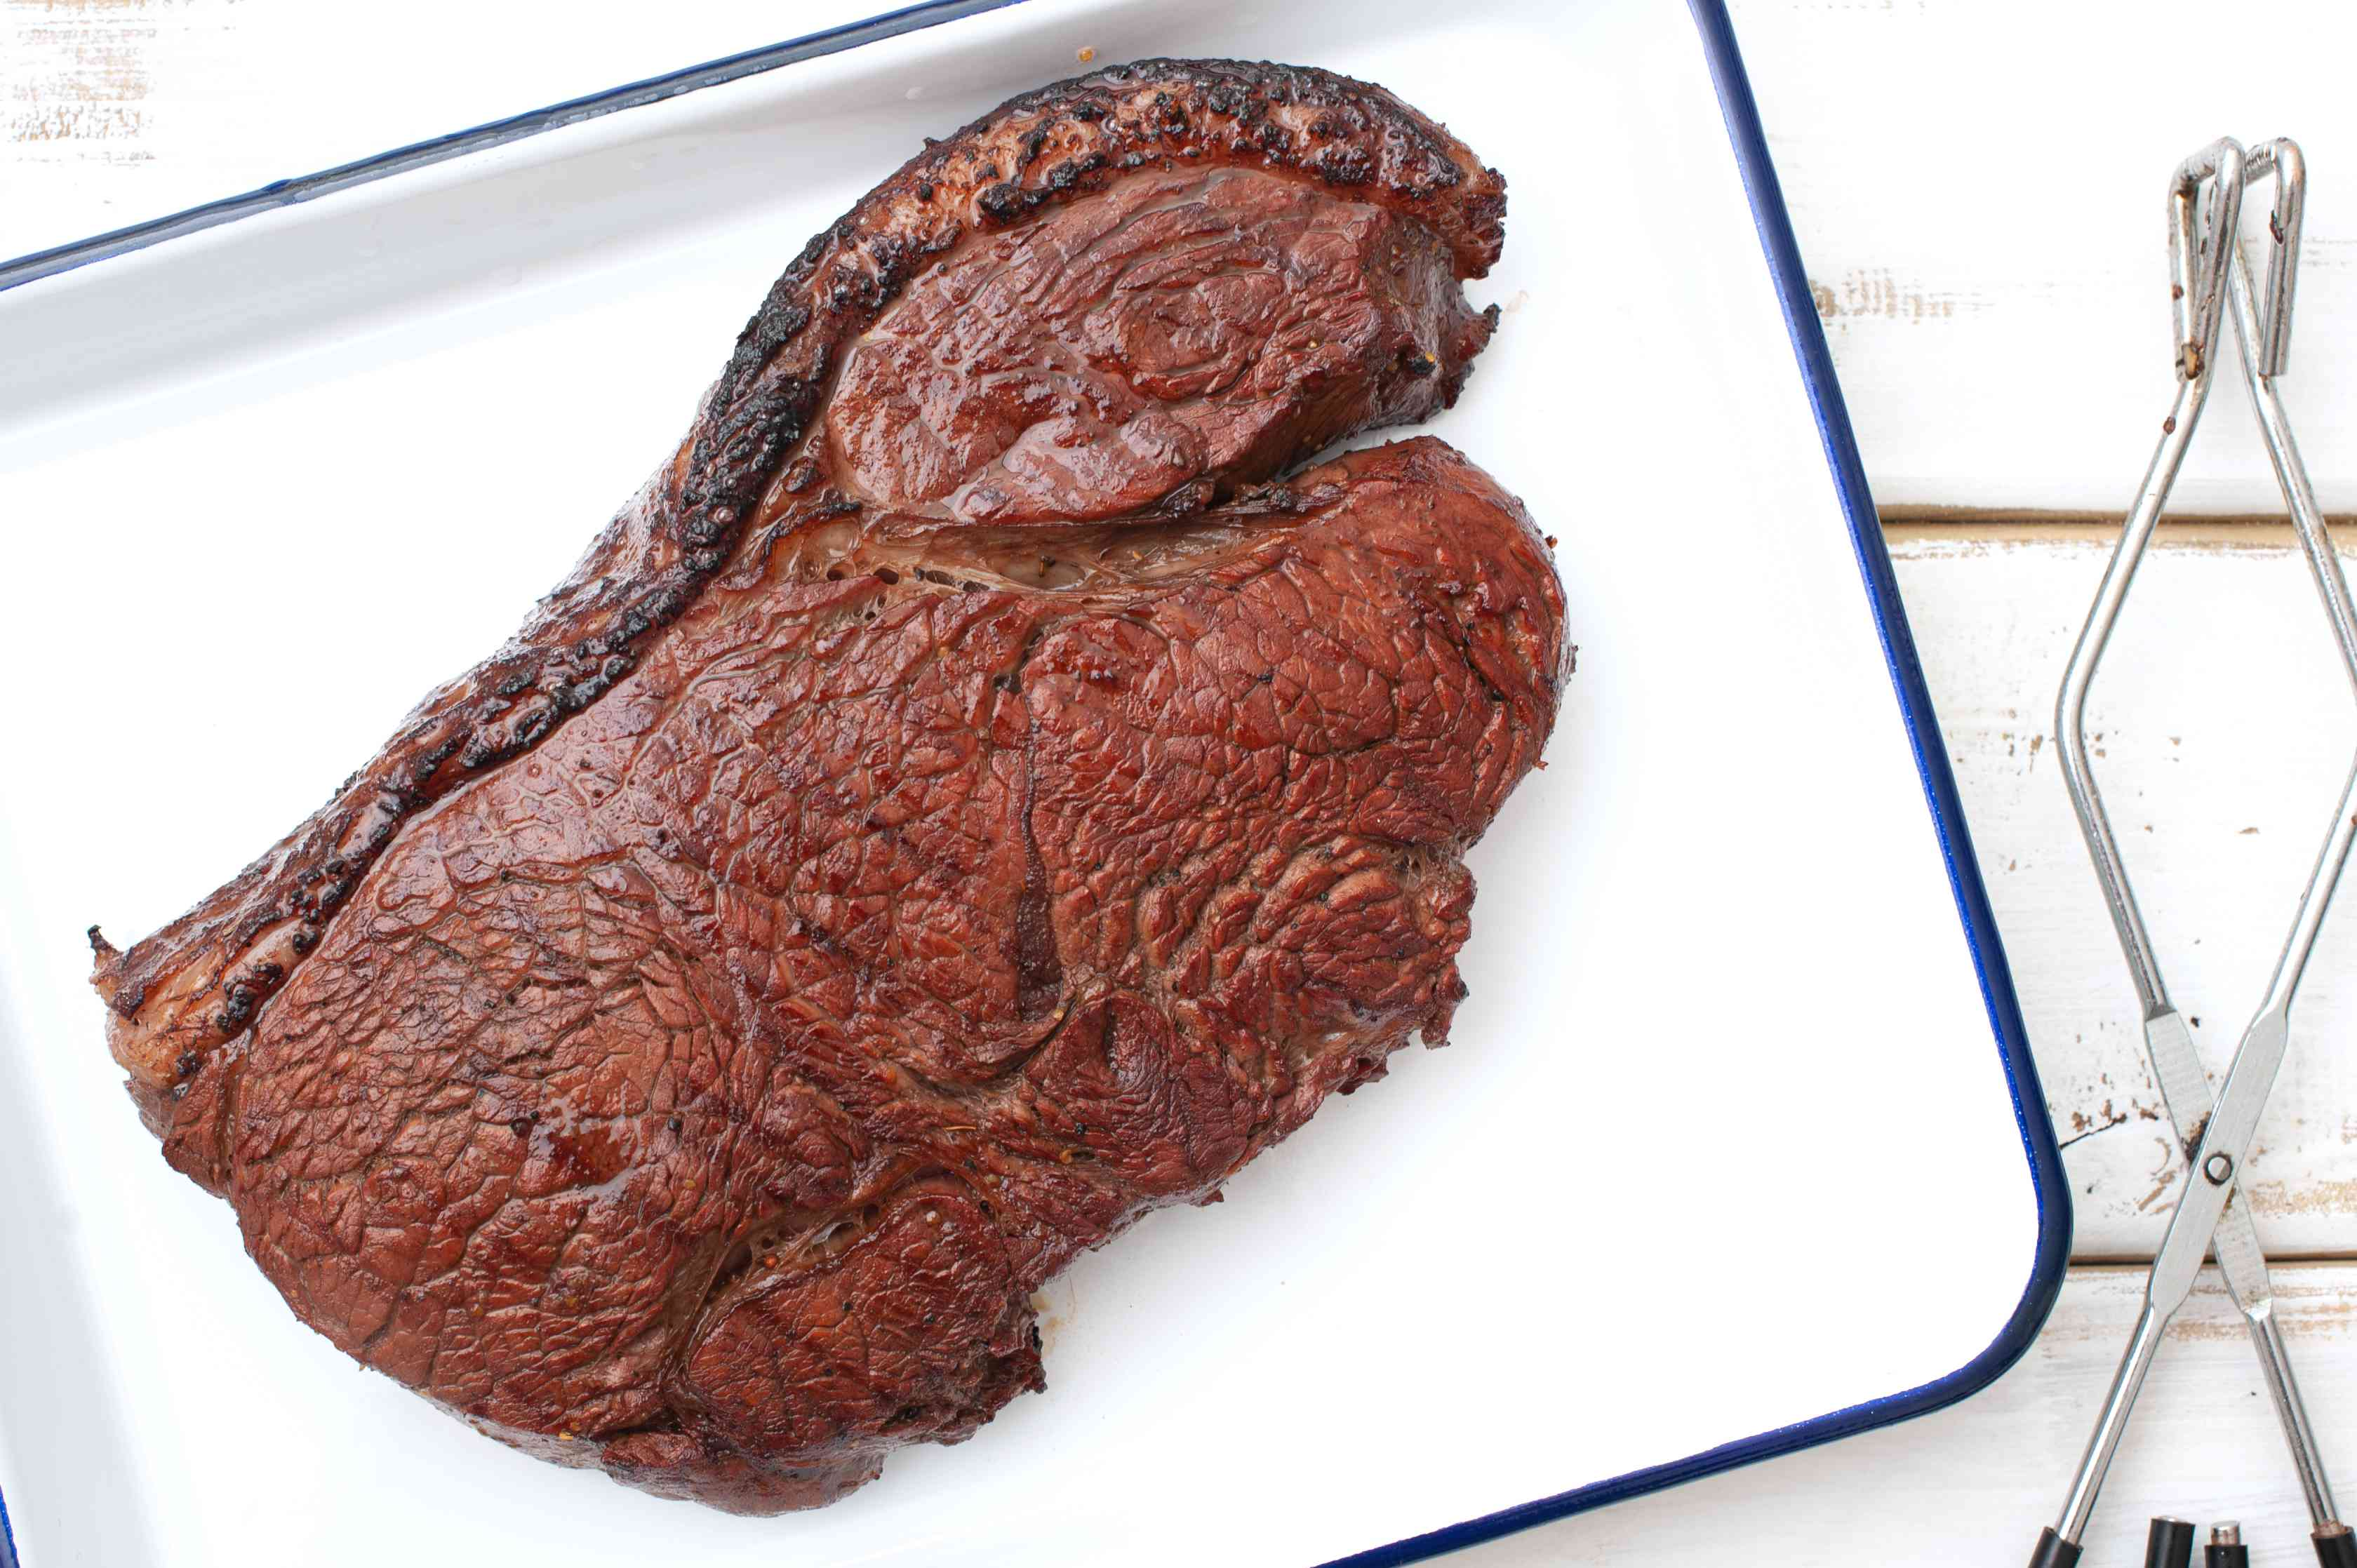 Remove steak from grill and let rest